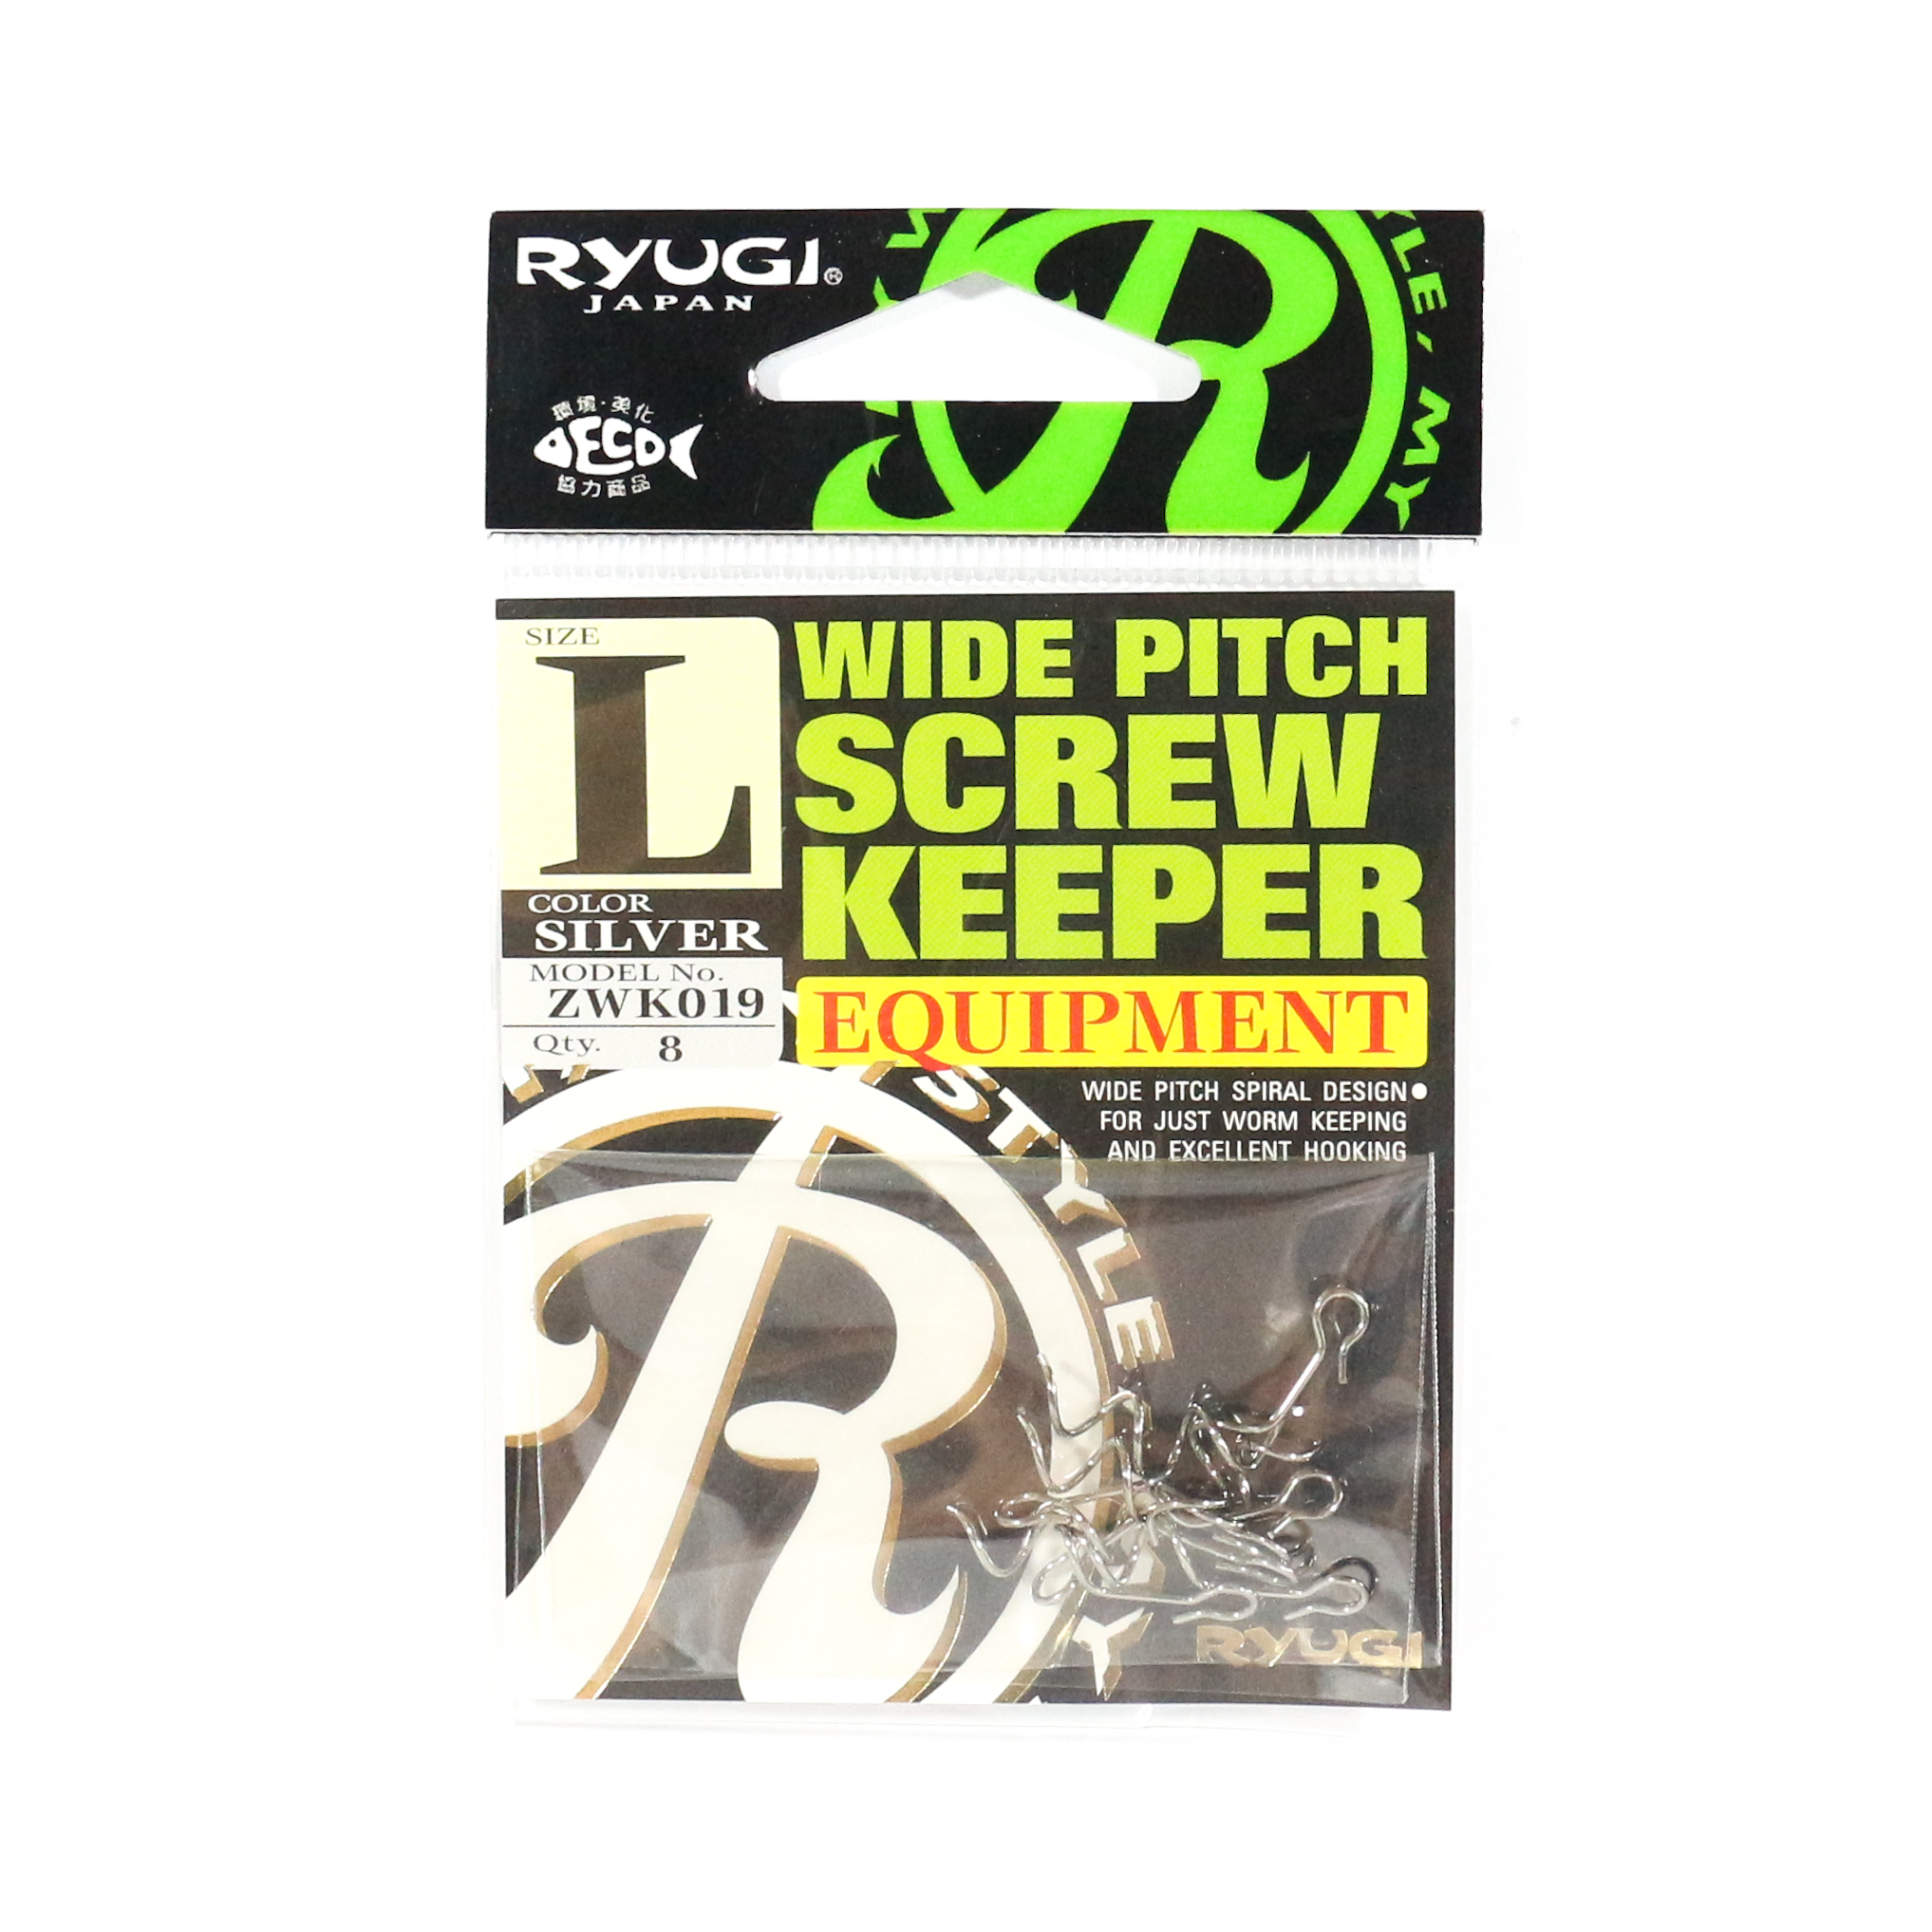 Ryugi ZWK019 Wide Pitch Screw Keeper Size L (1314)